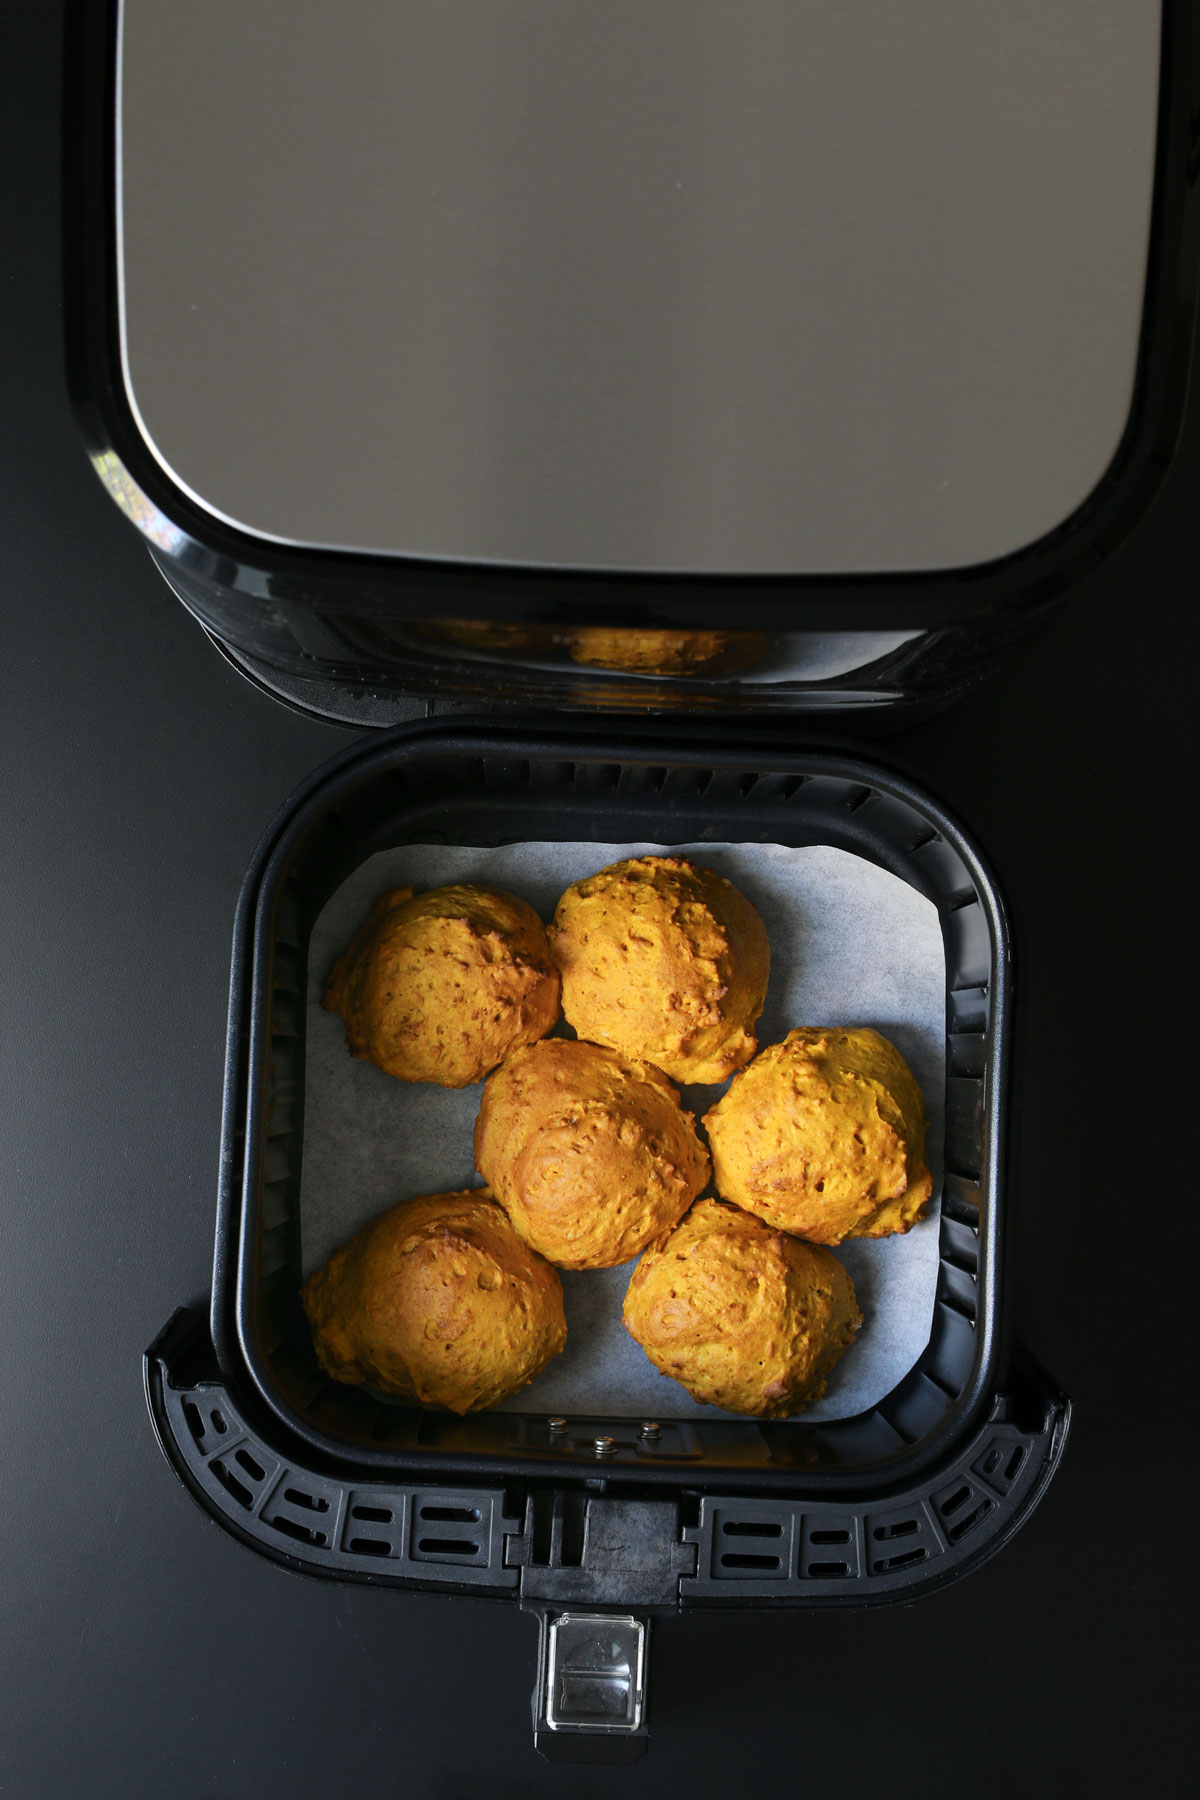 baked biscuits in air fryer basket.